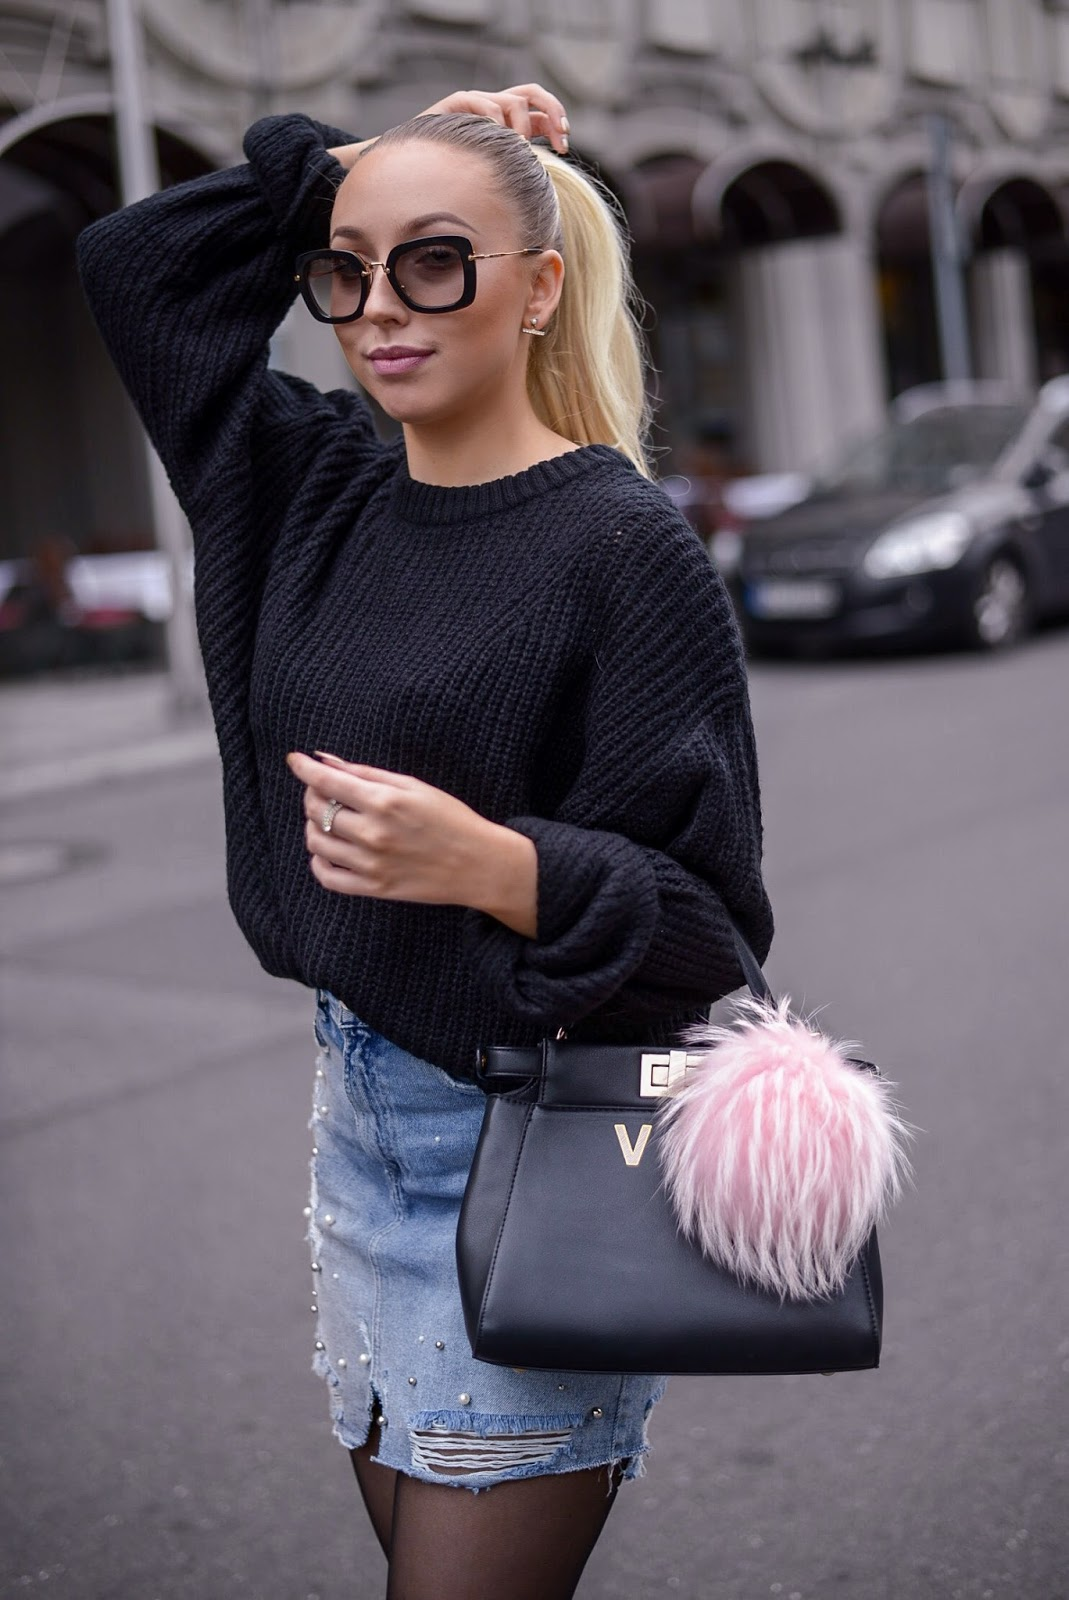 black chunky knit sweater_fendi peekaboo inspired bag_pink fur bag charm_fall looks